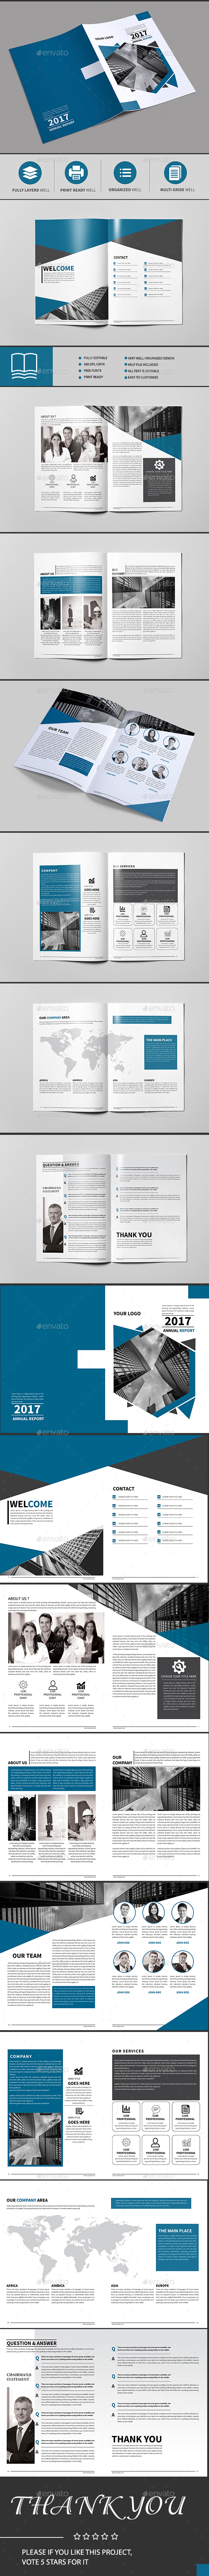 Corporate Brochure Template 16 Page — InDesign Template #orange ...